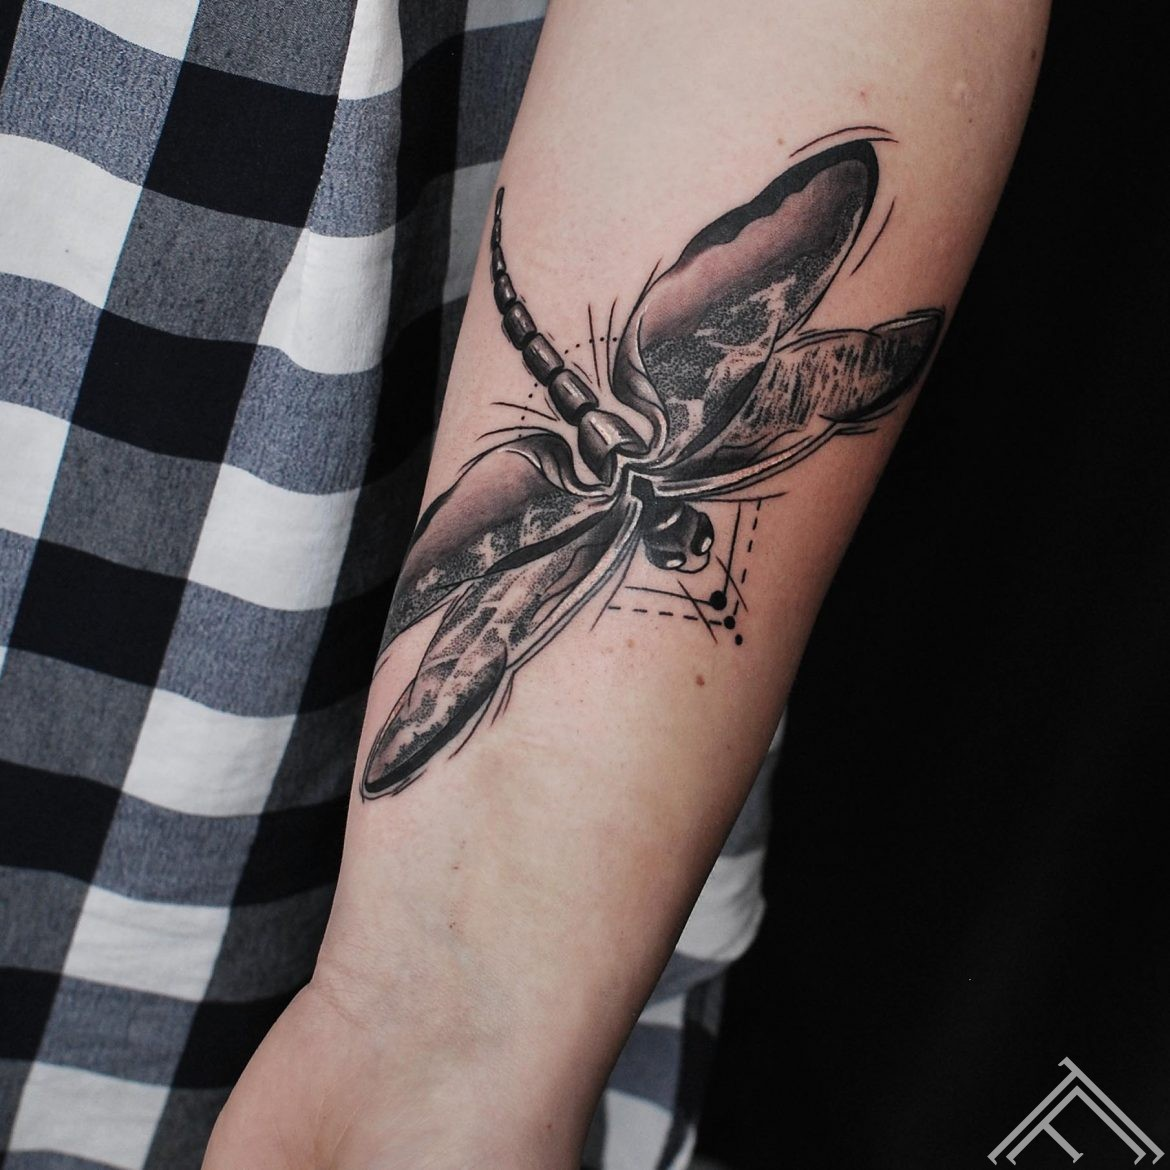 martinssilins-tattoo-tetovejums-spare-draguonfly-tattoofrequency-riga-m.lapa